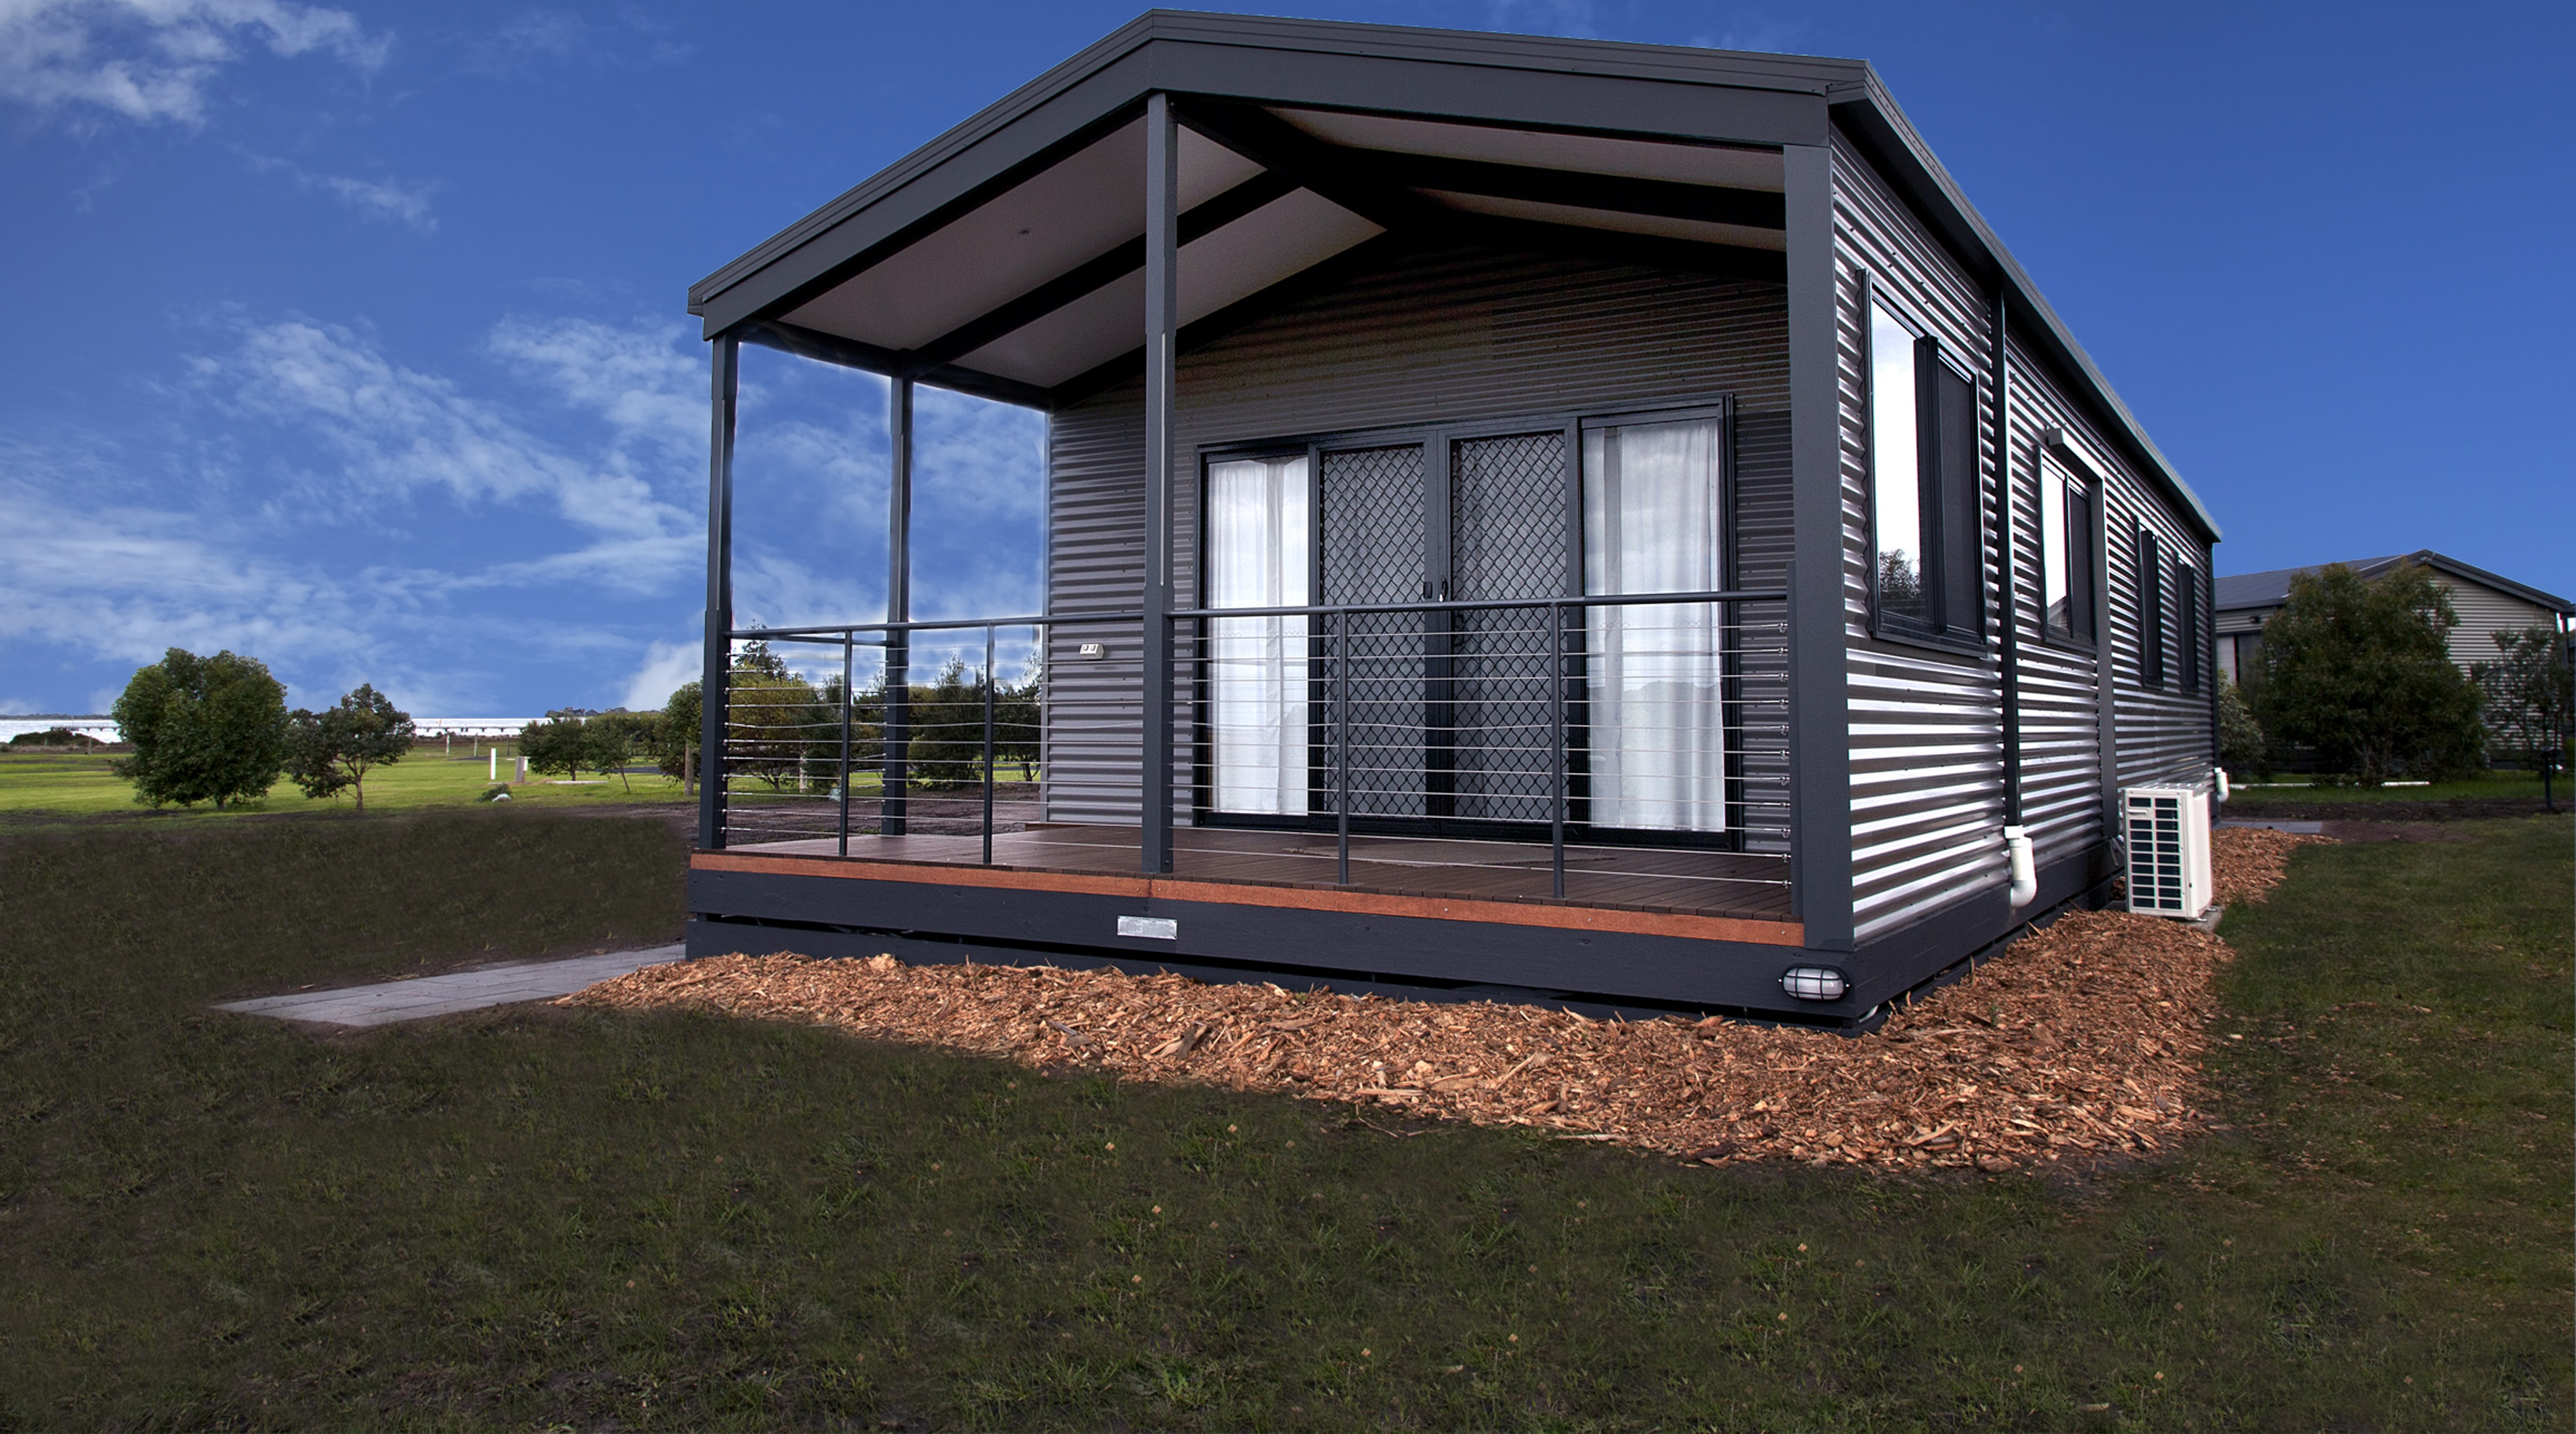 3 Bedroom Family Holiday Unit external cabin